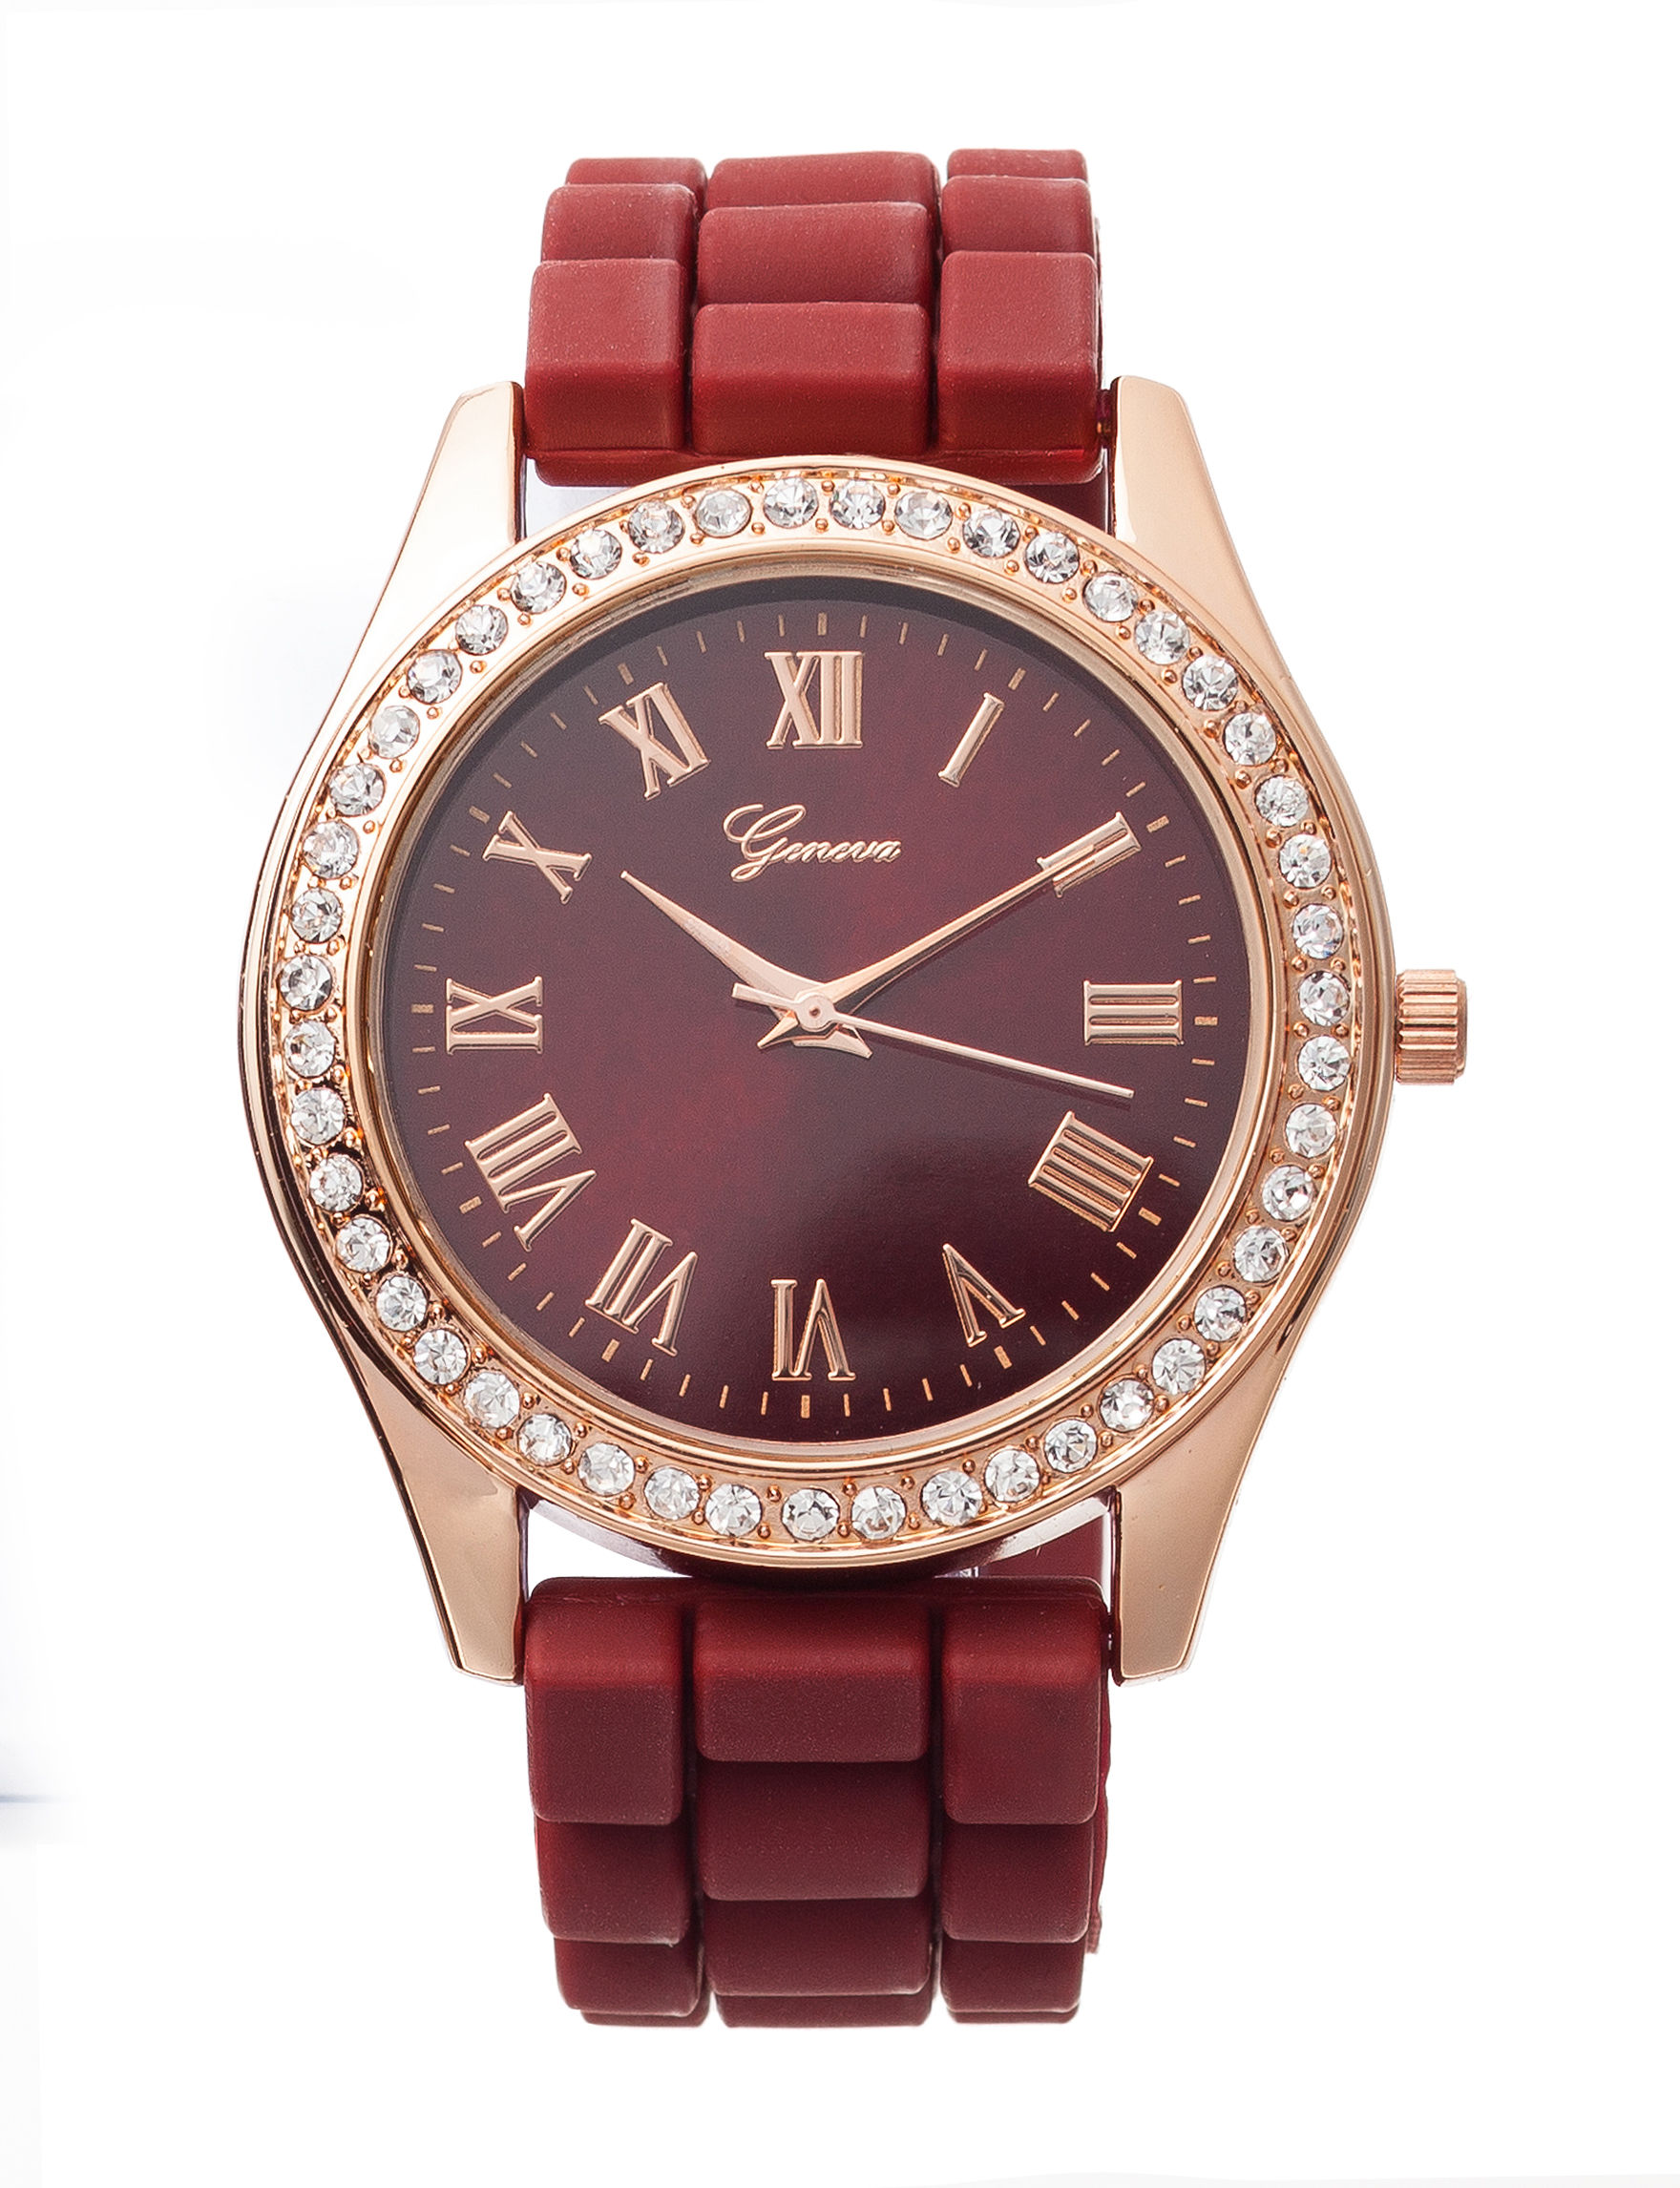 Global Time Burgundy Fashion Watches